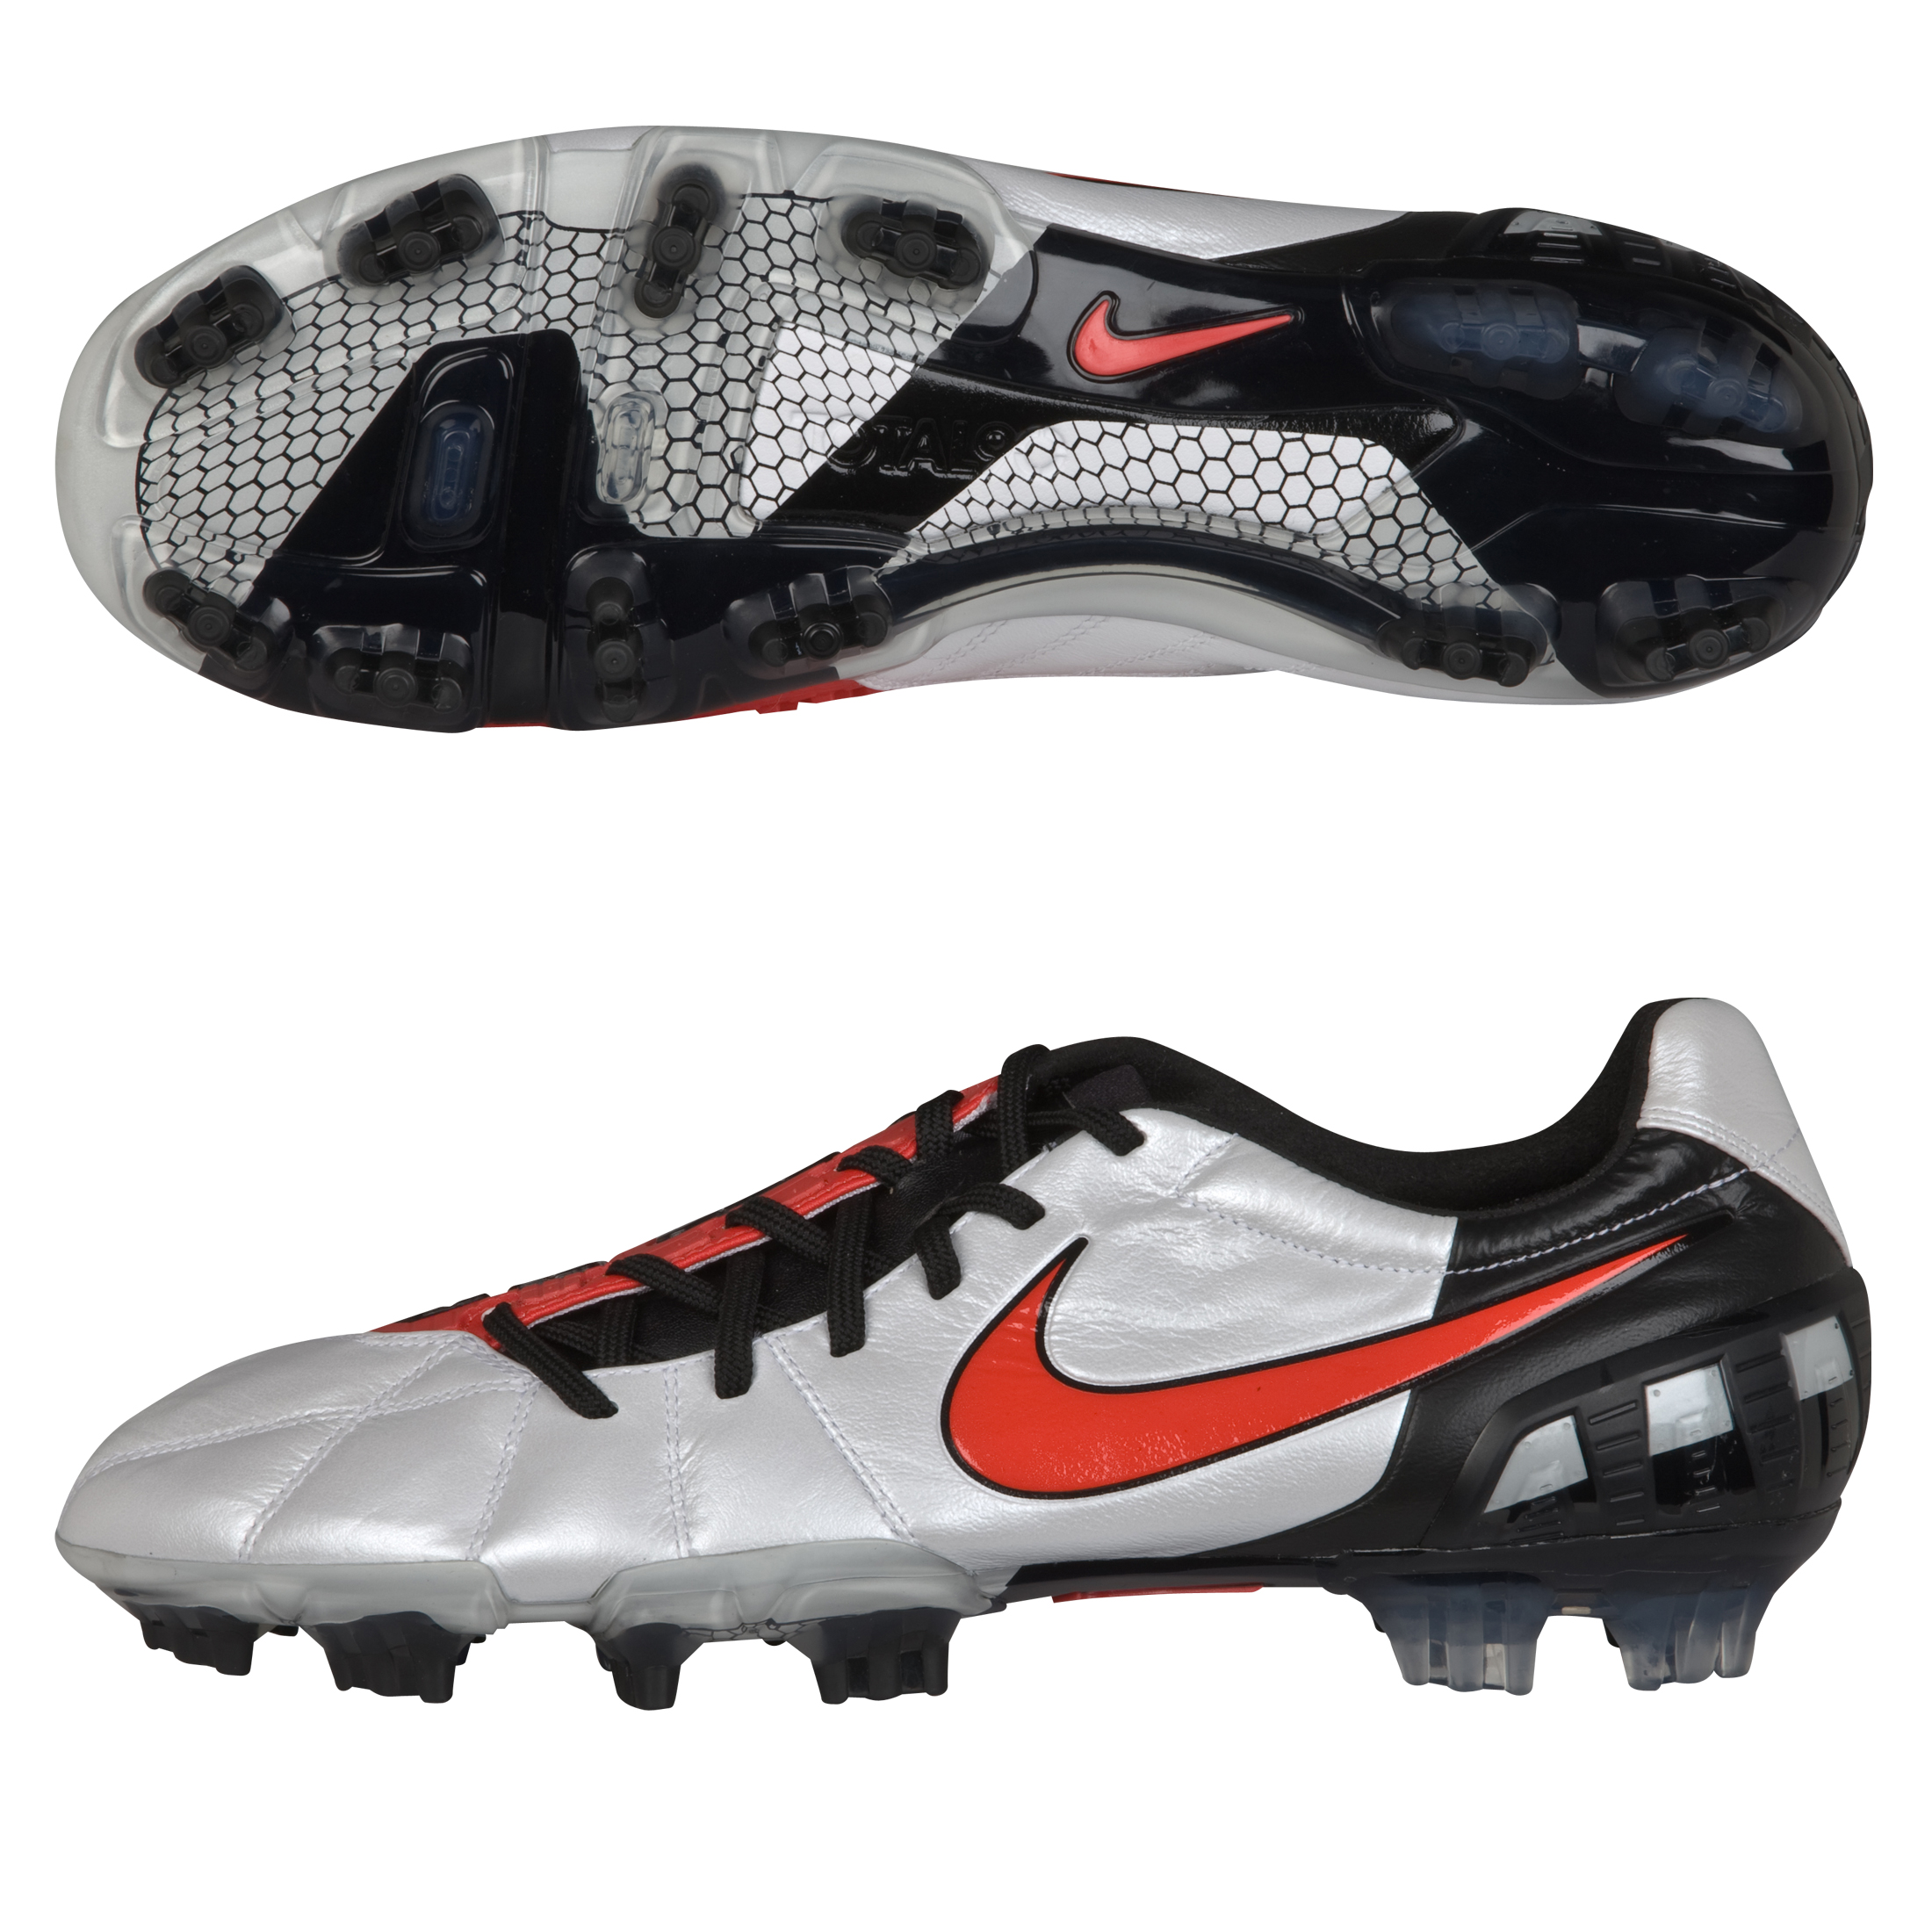 T90 Laser III K-FG White/Challenge Red/Black